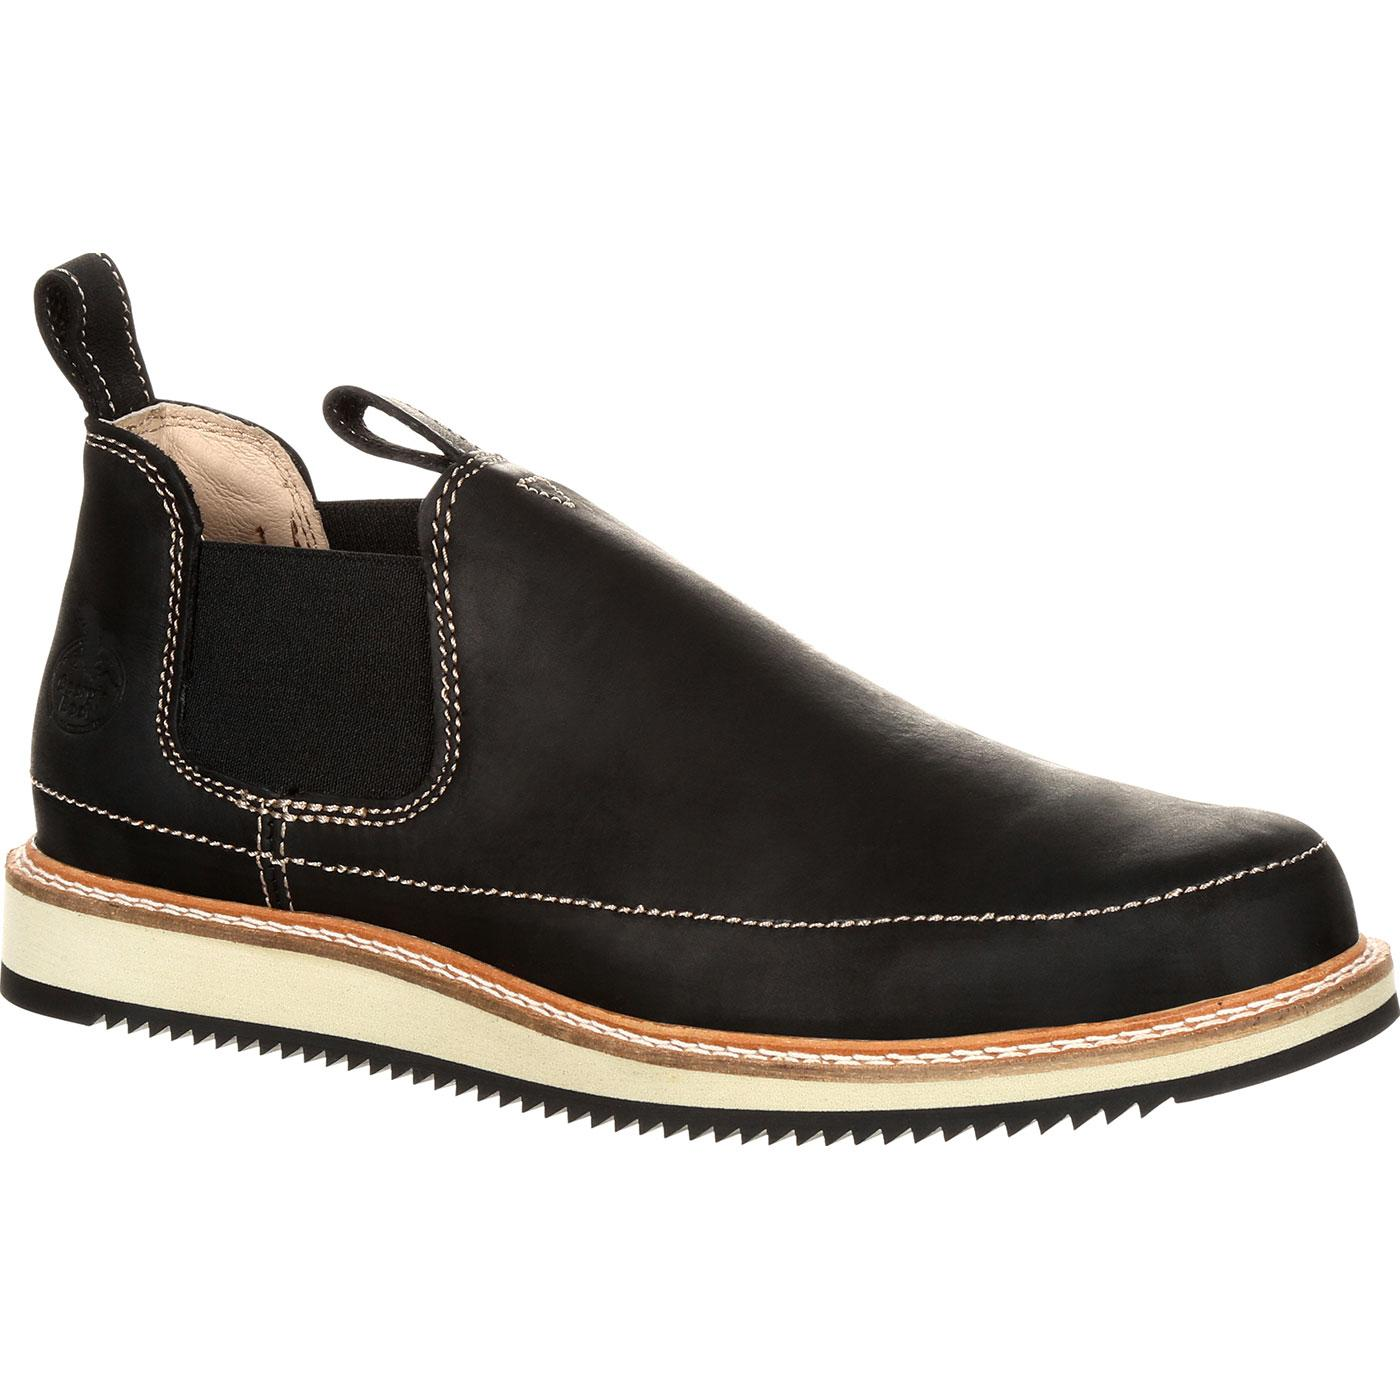 Best Work Shoes For Large Men